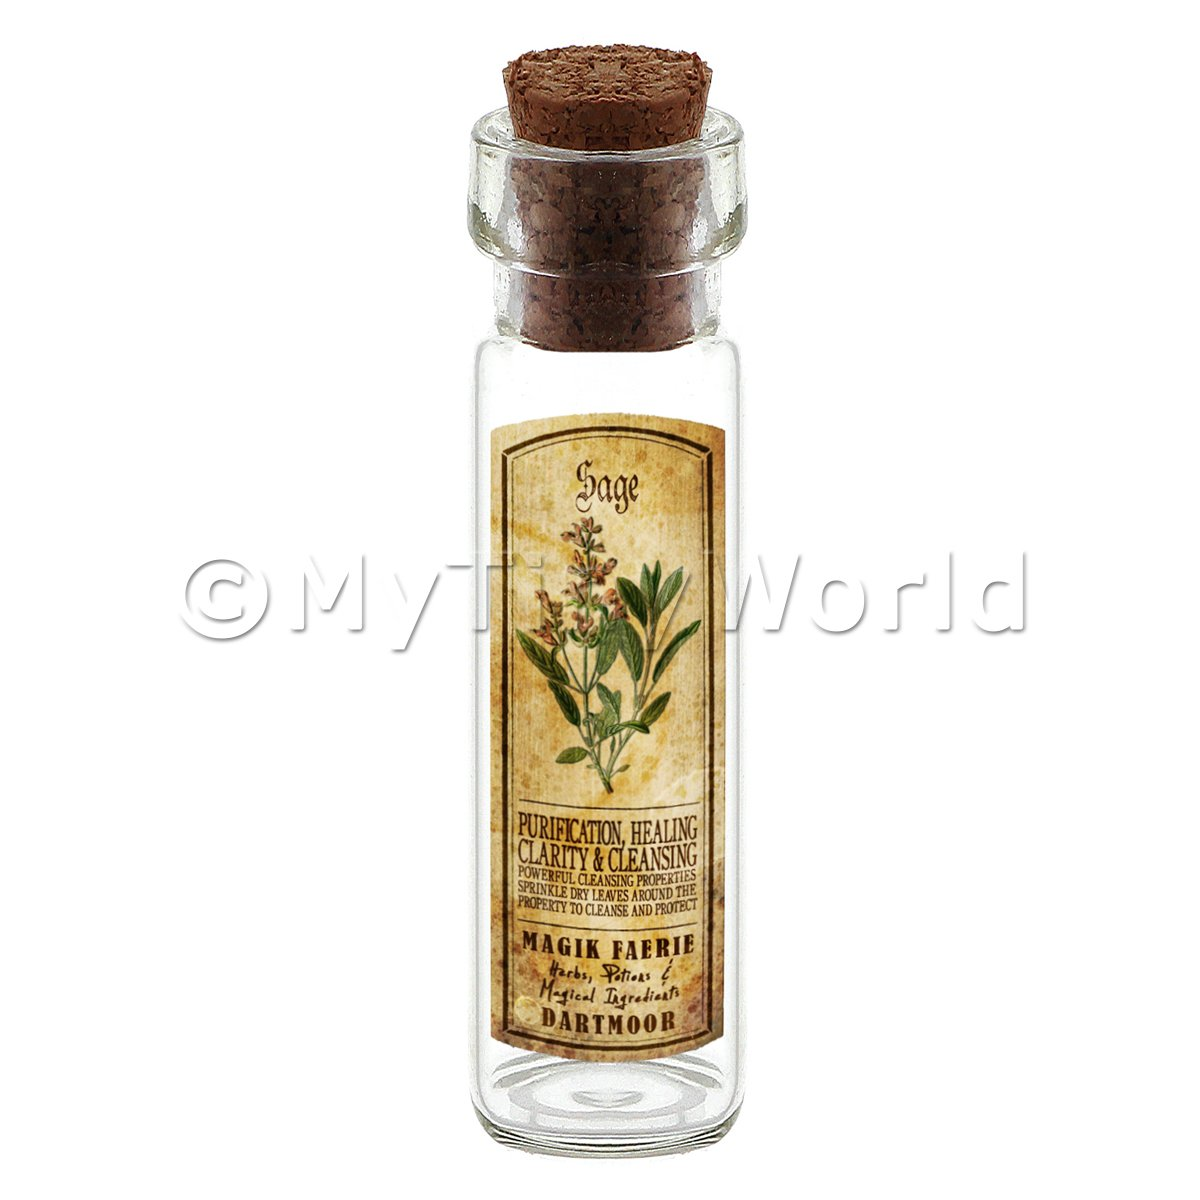 Dolls House Apothecary Sage Herb Long Colour Label And Bottle